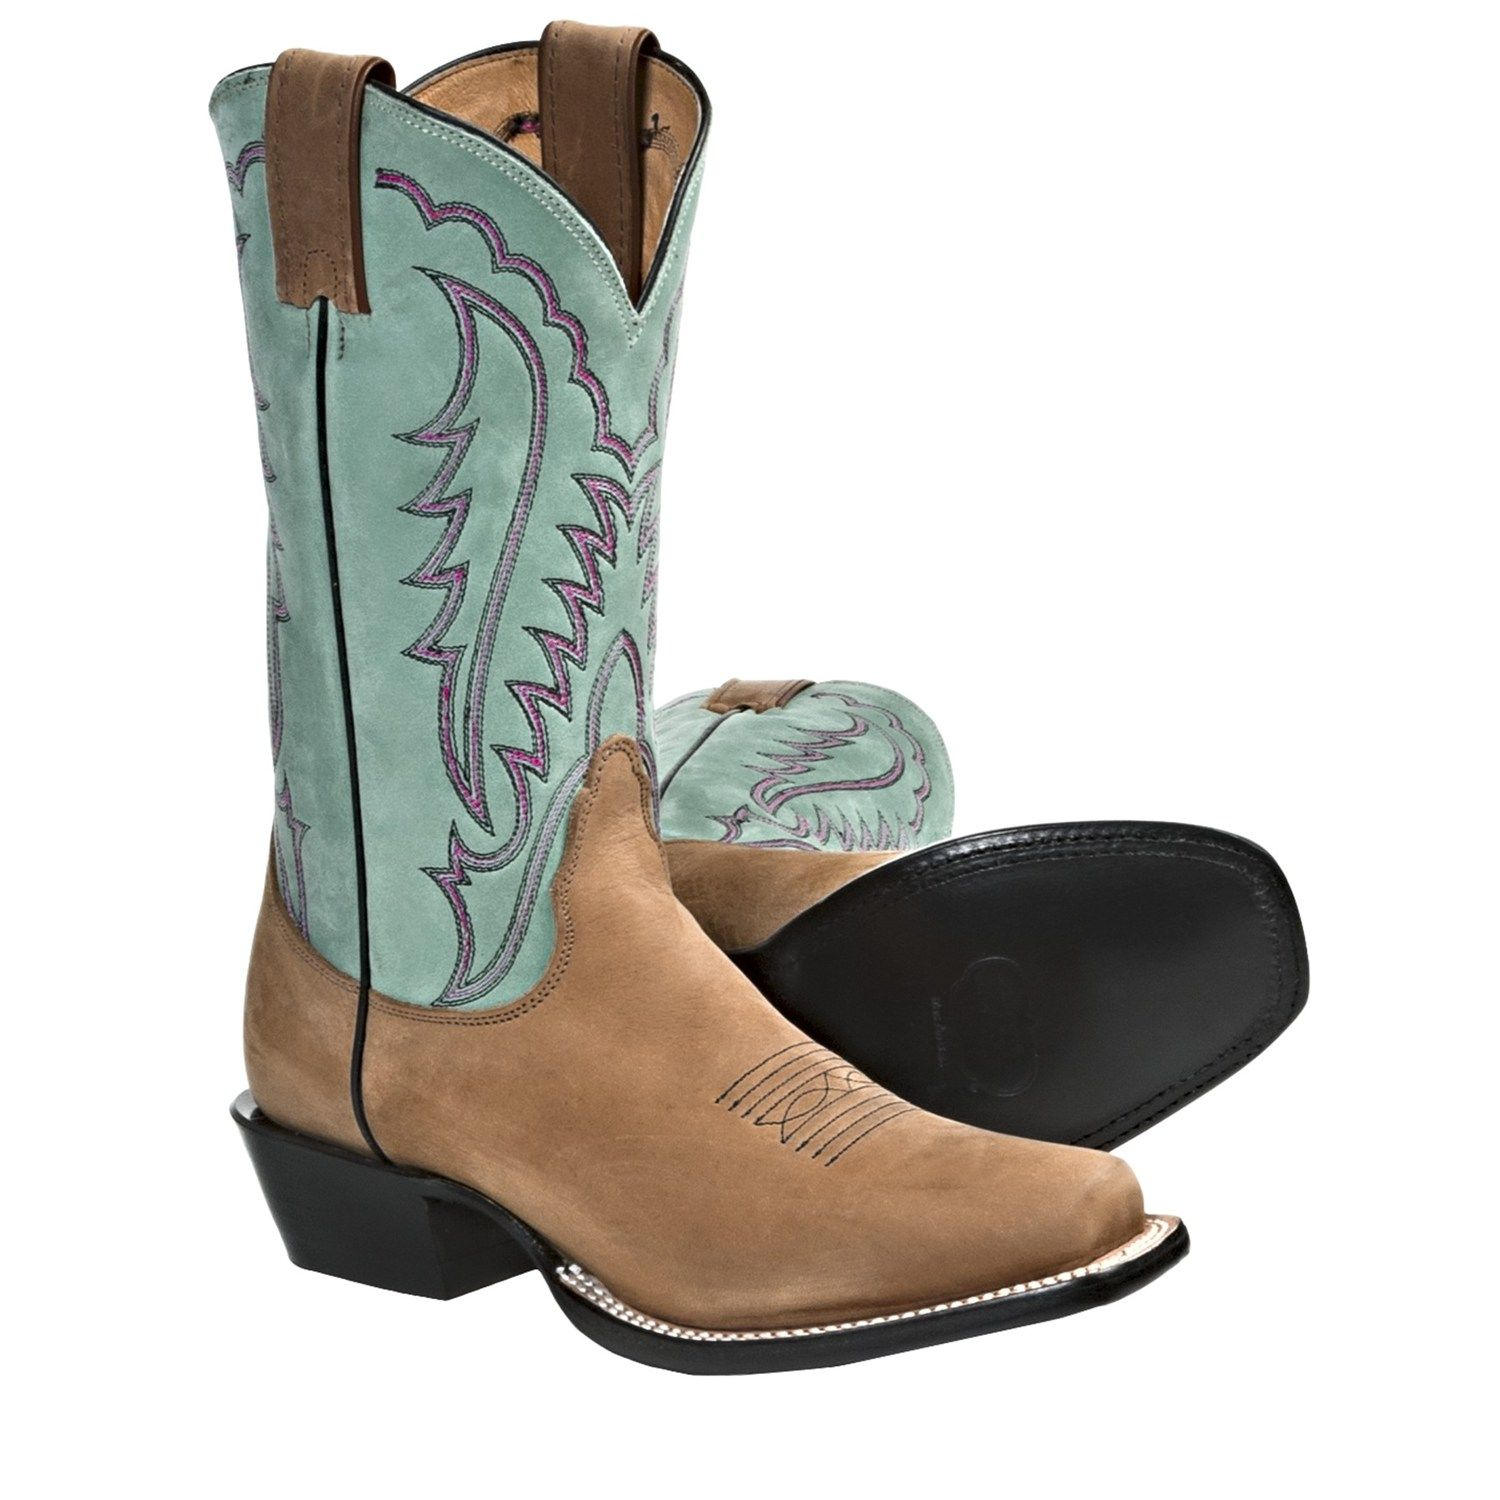 1000  images about cowgirl boots on Pinterest | Pistols, Tony lama ...